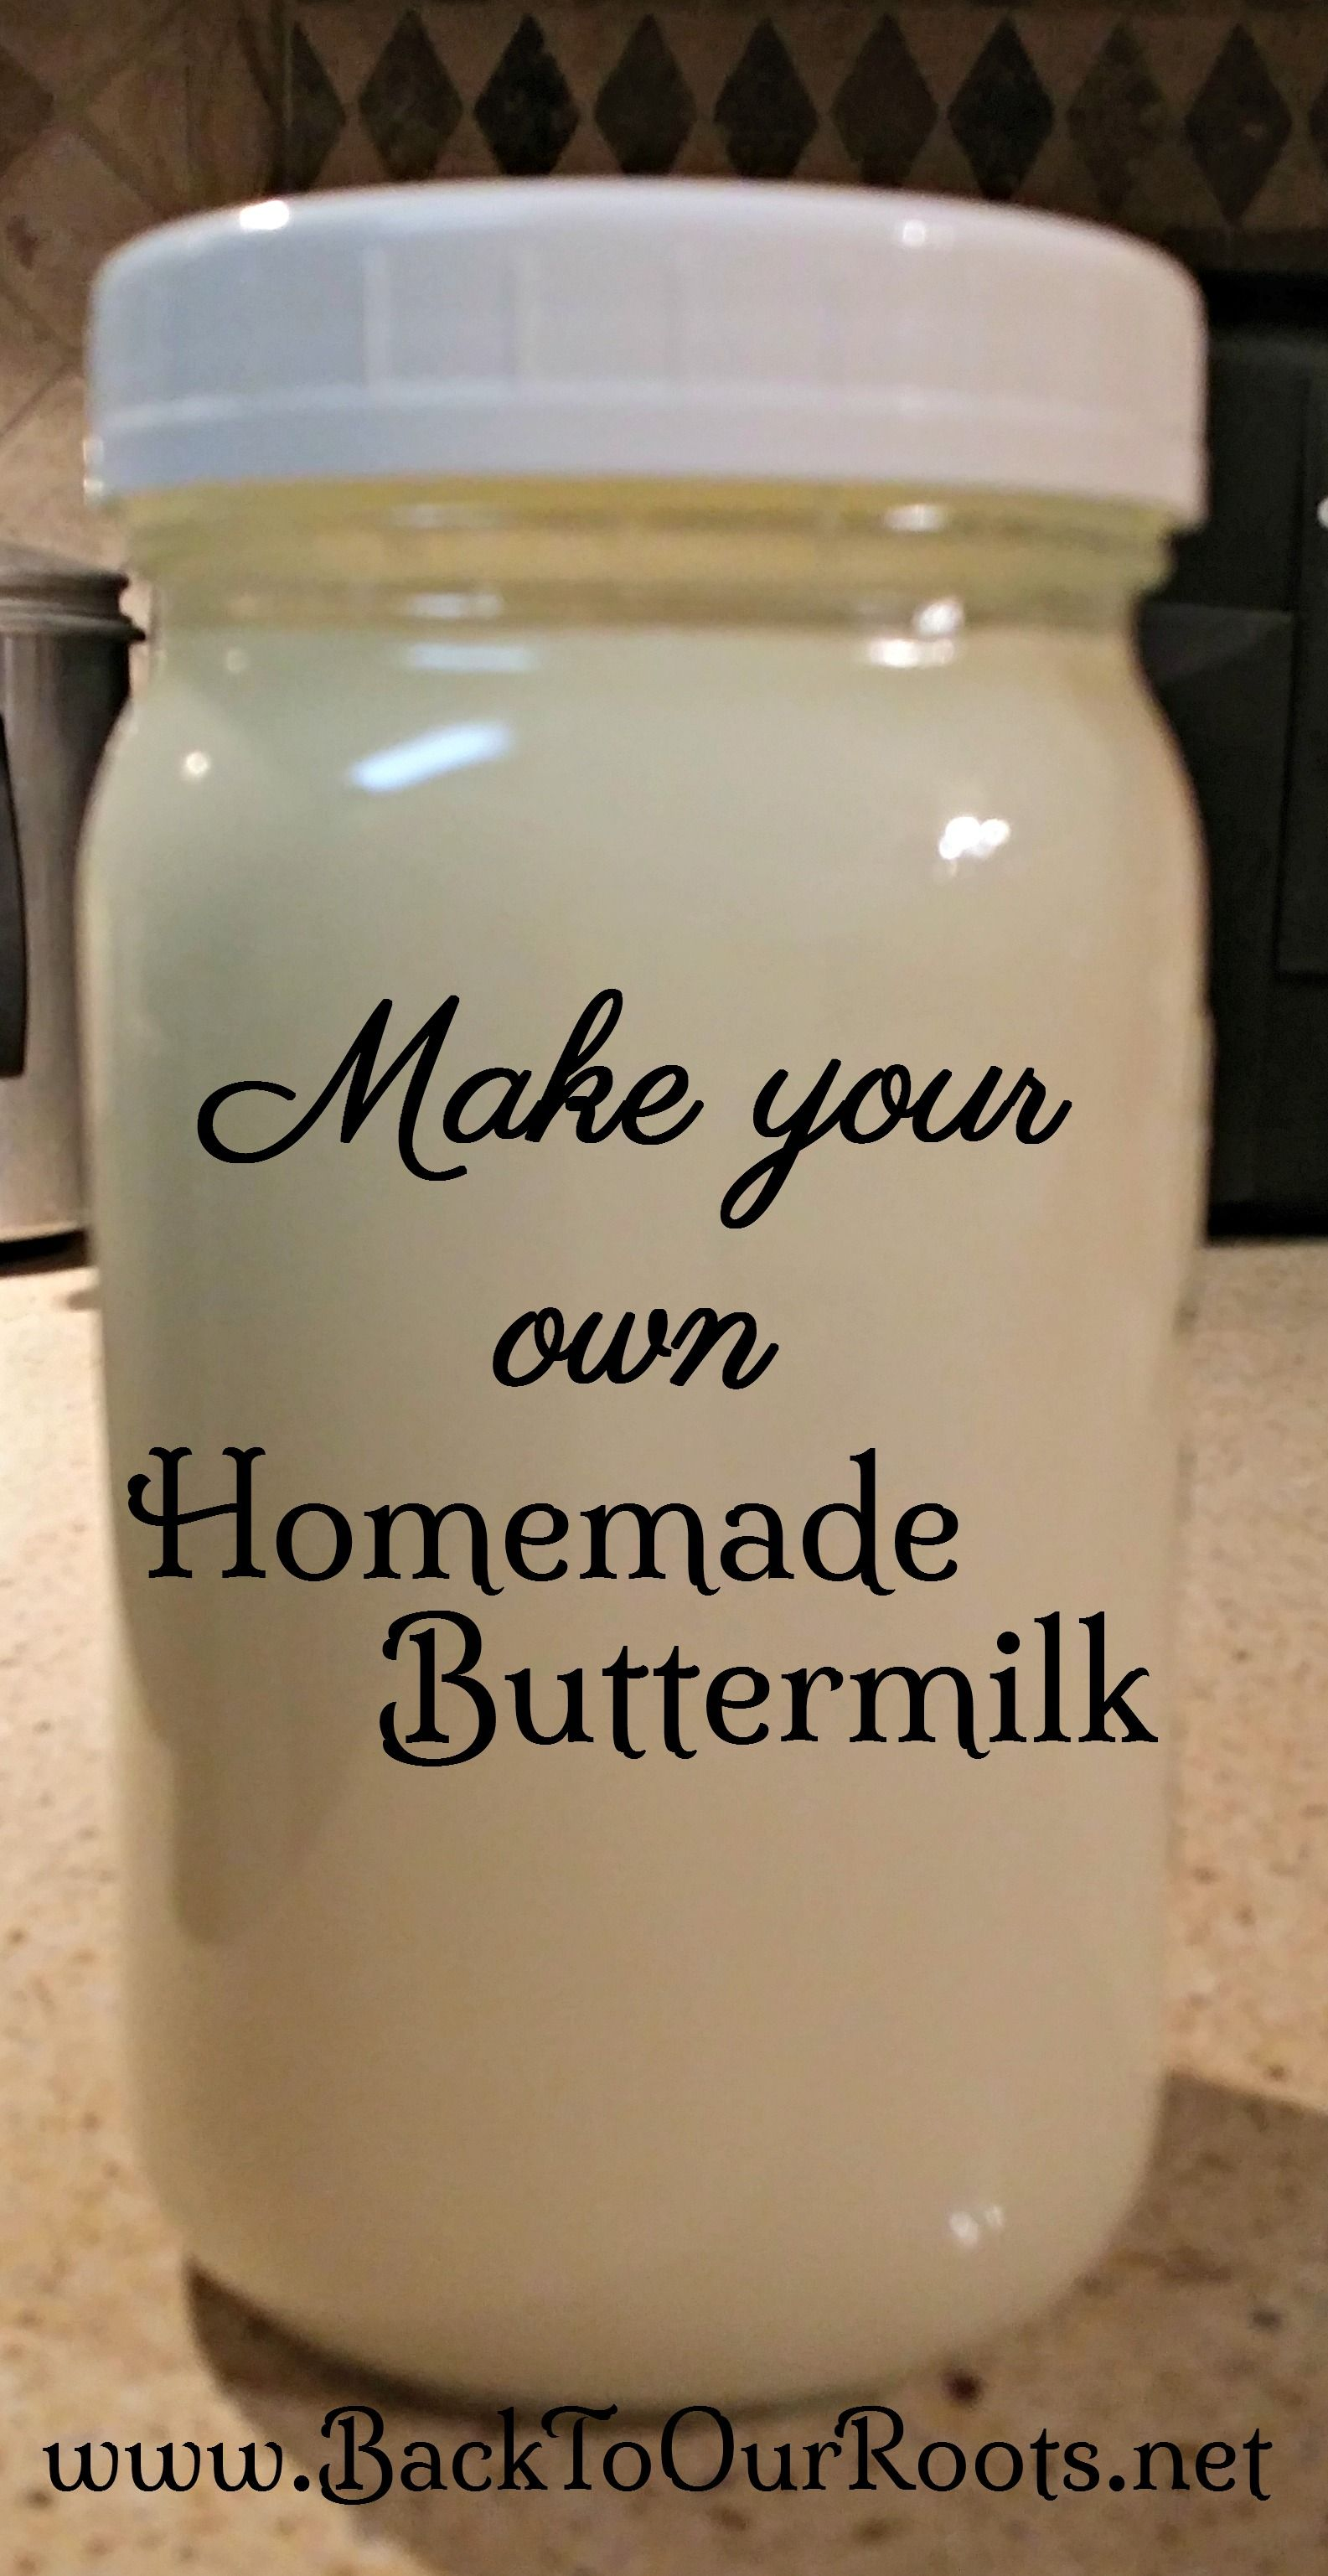 Have You Ever Thought About Making Your Own Homemade Cultured Buttermilk It S Very Simple And I Wal Cultured Buttermilk Homemade Buttermilk Buttermilk Recipes